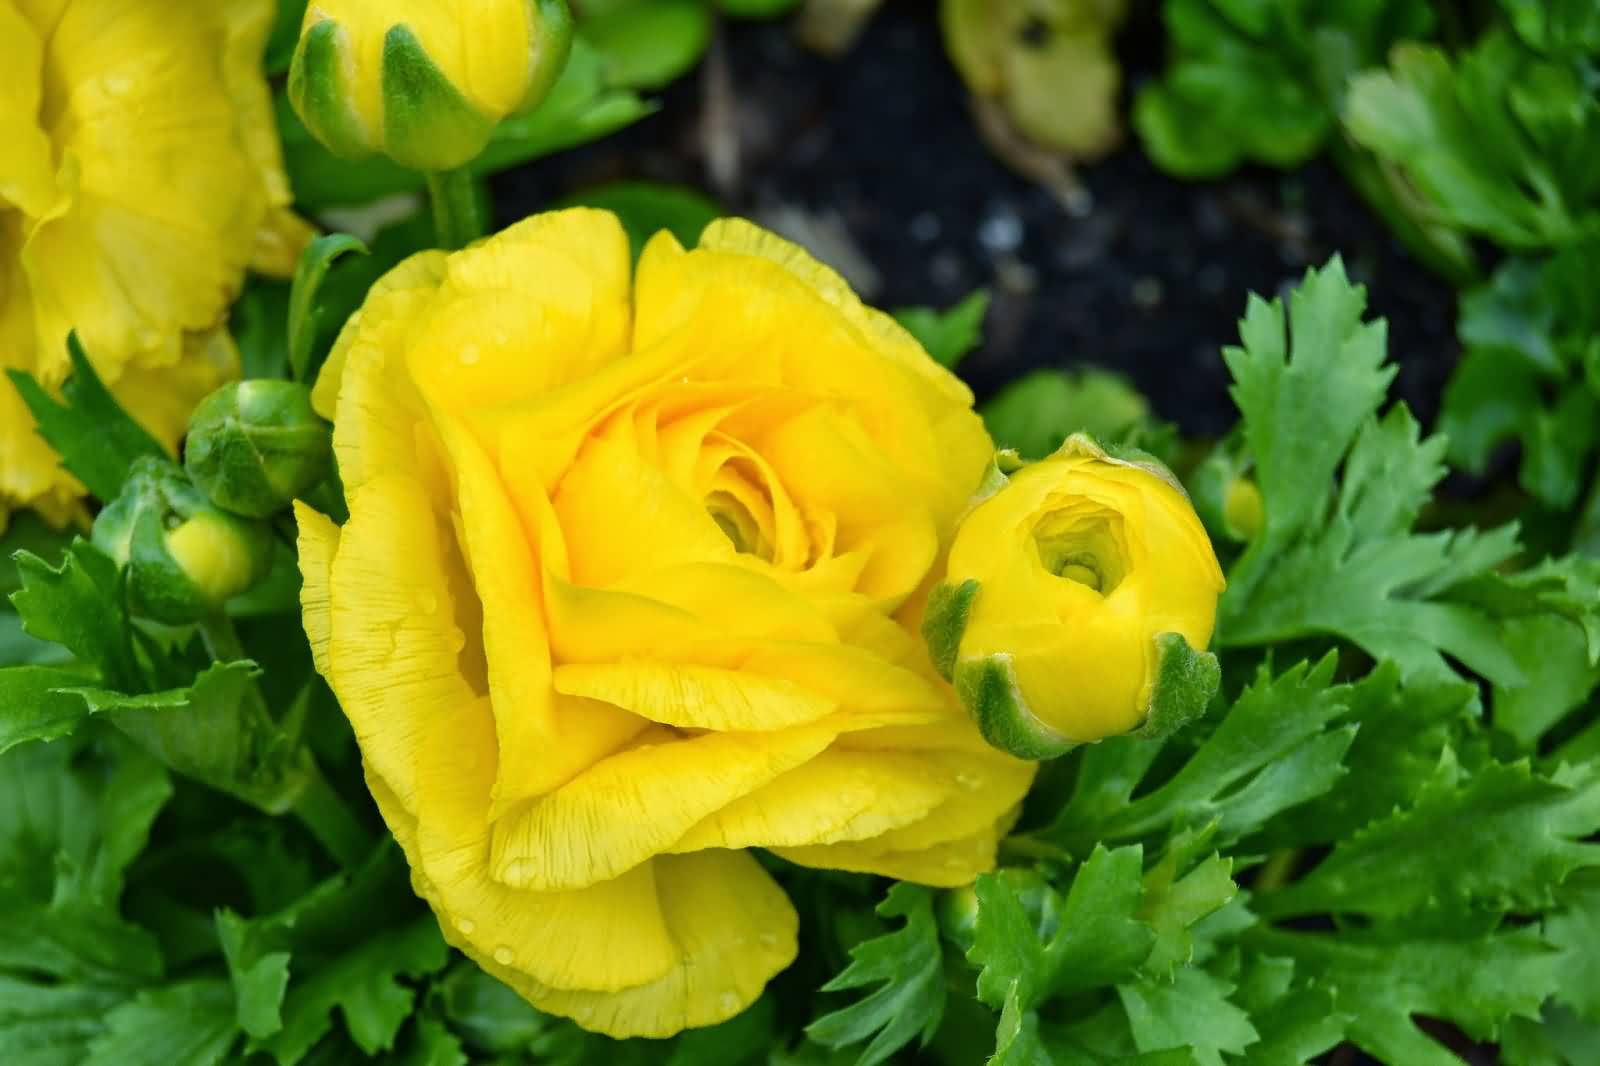 Most Beautiful Yellow Buttercup Flower In Plant With Green Leafs